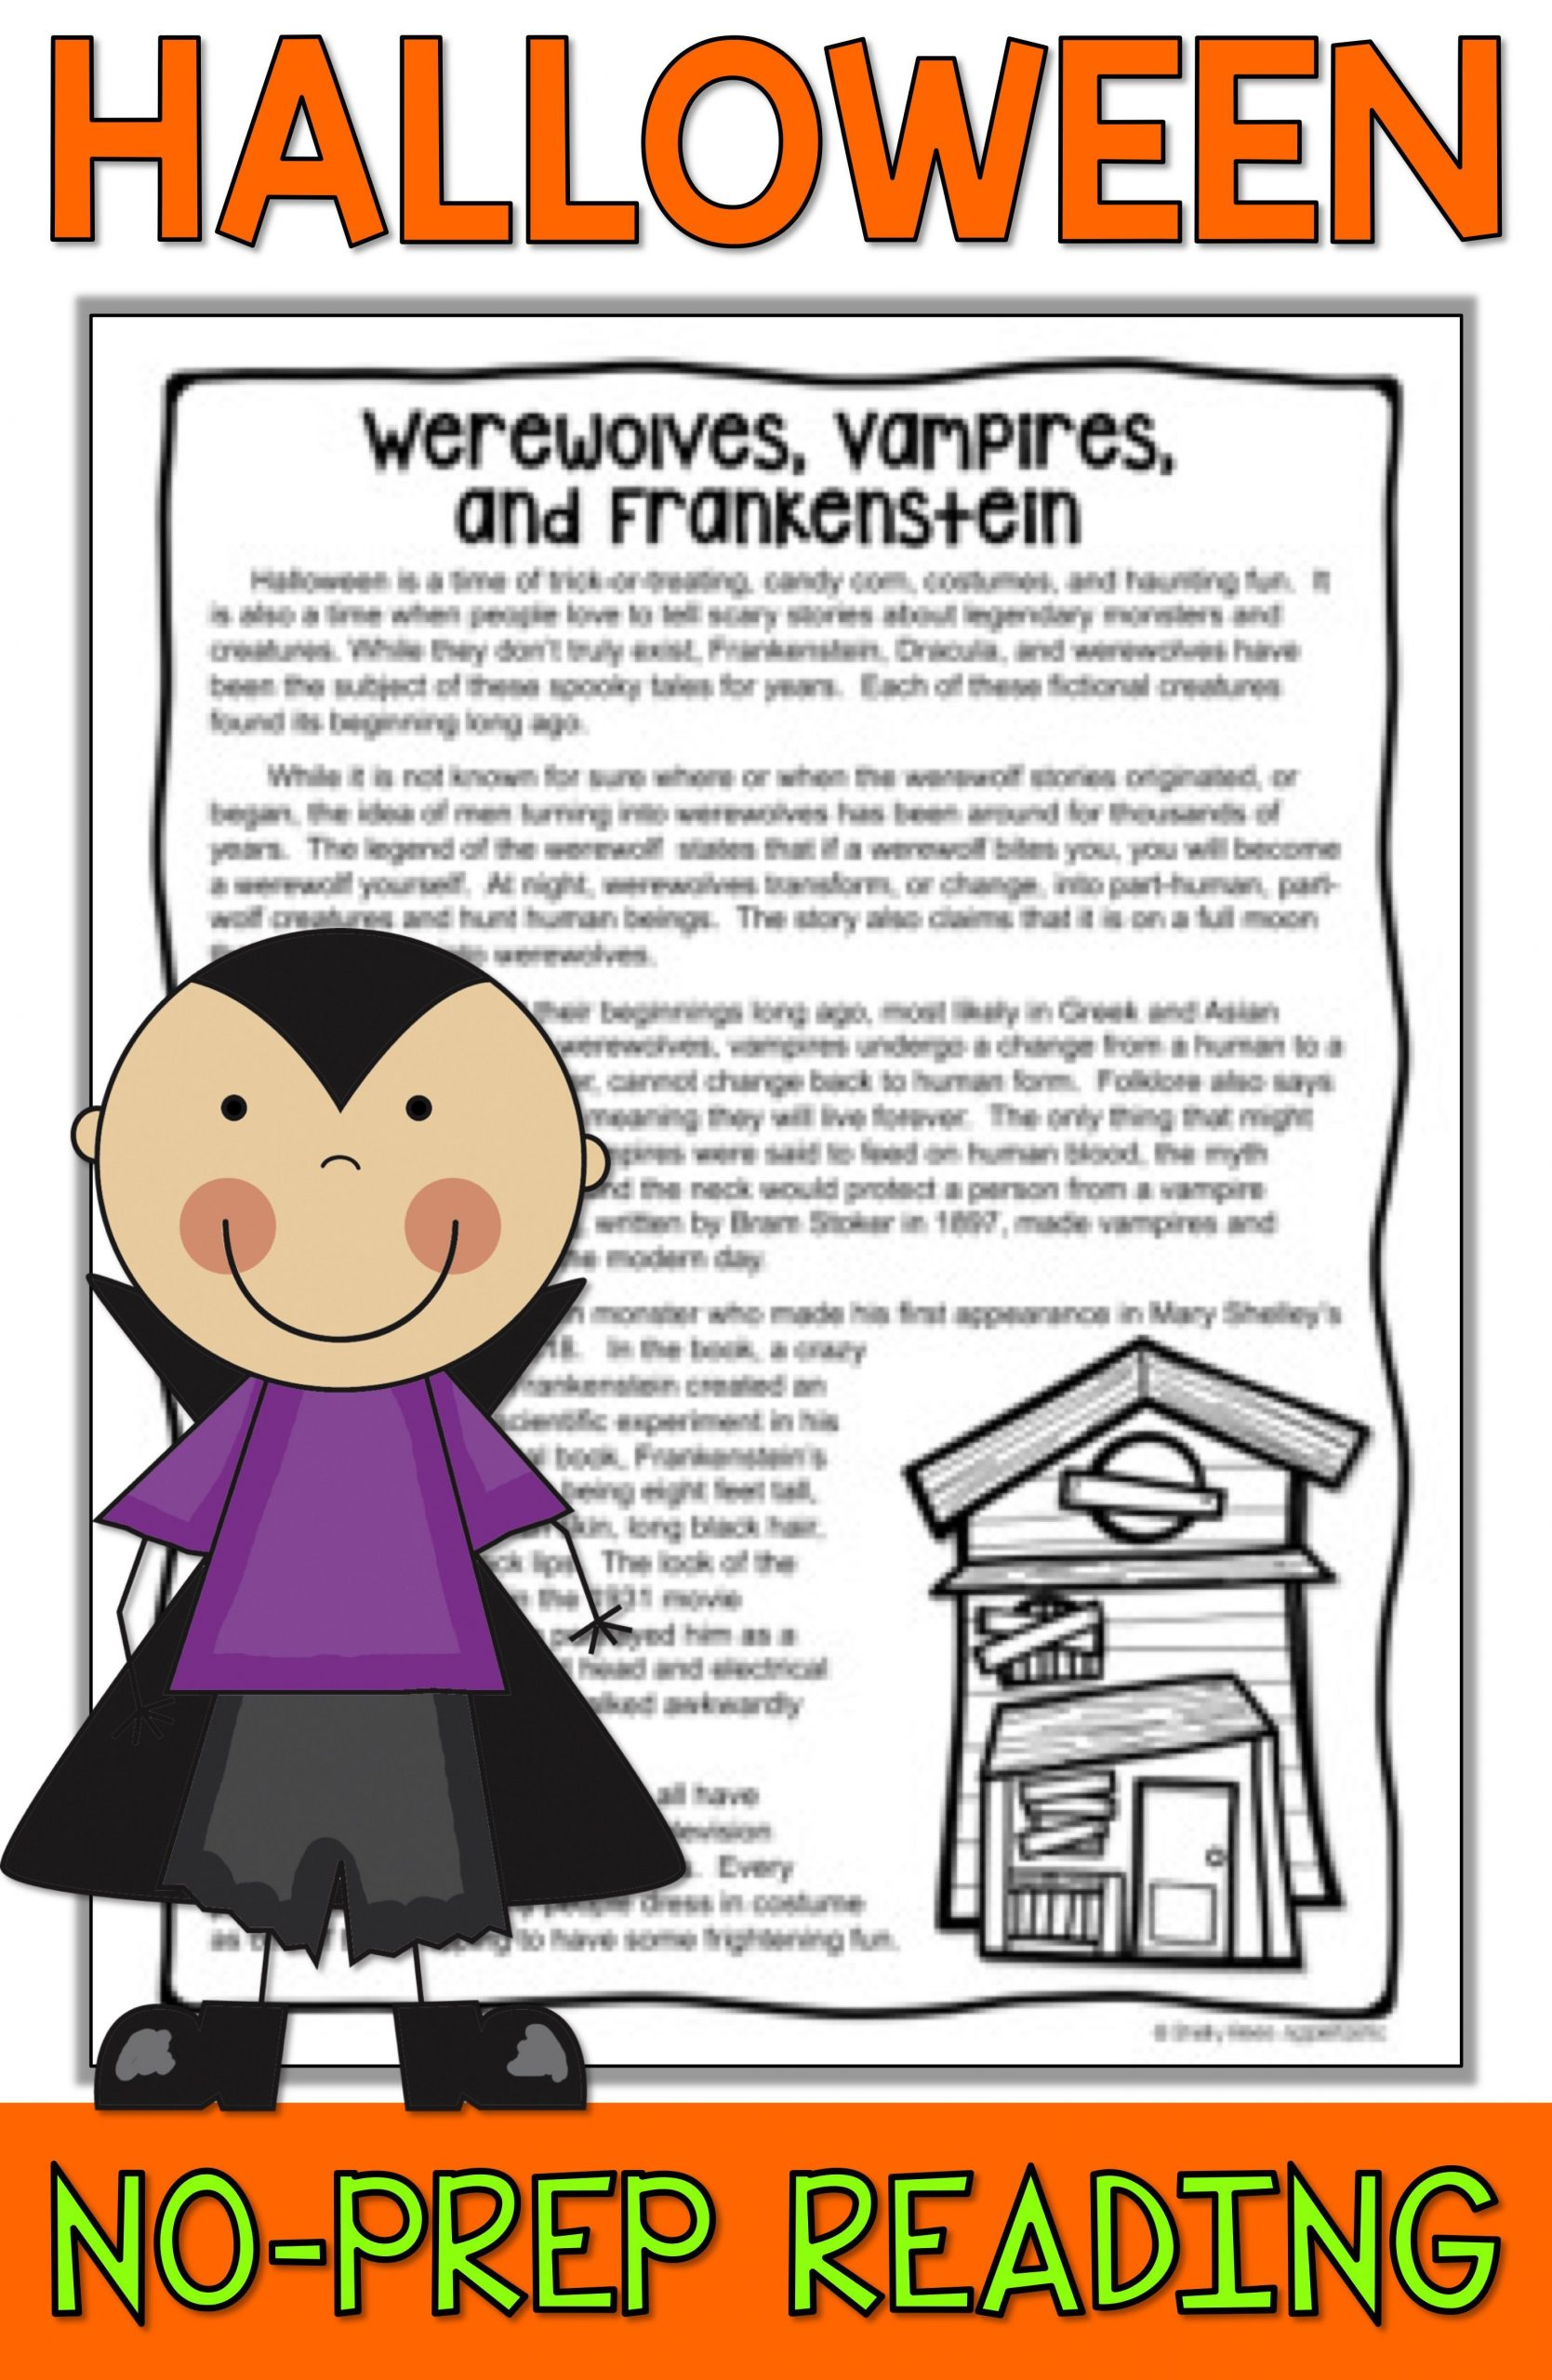 Halloween Reading activities for 3rd 4th grade 5th and